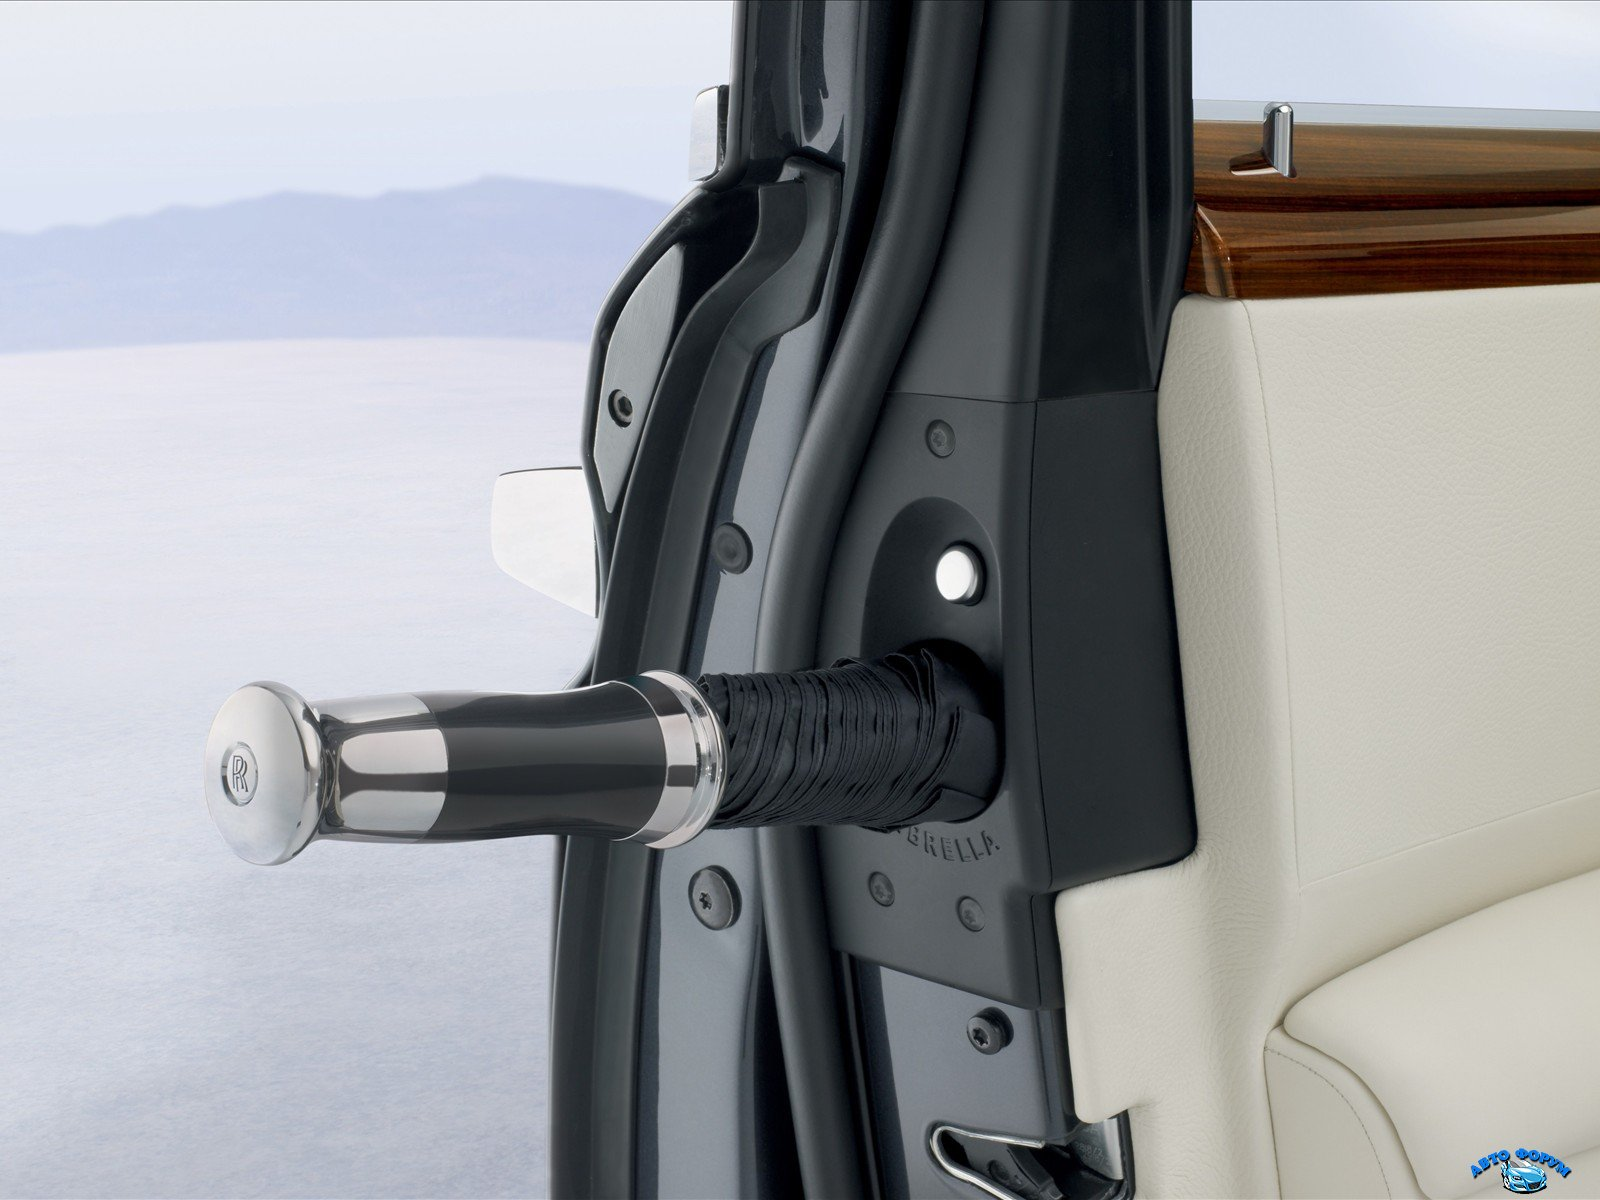 rolls-royce_ghost_umbrella_25.jpg